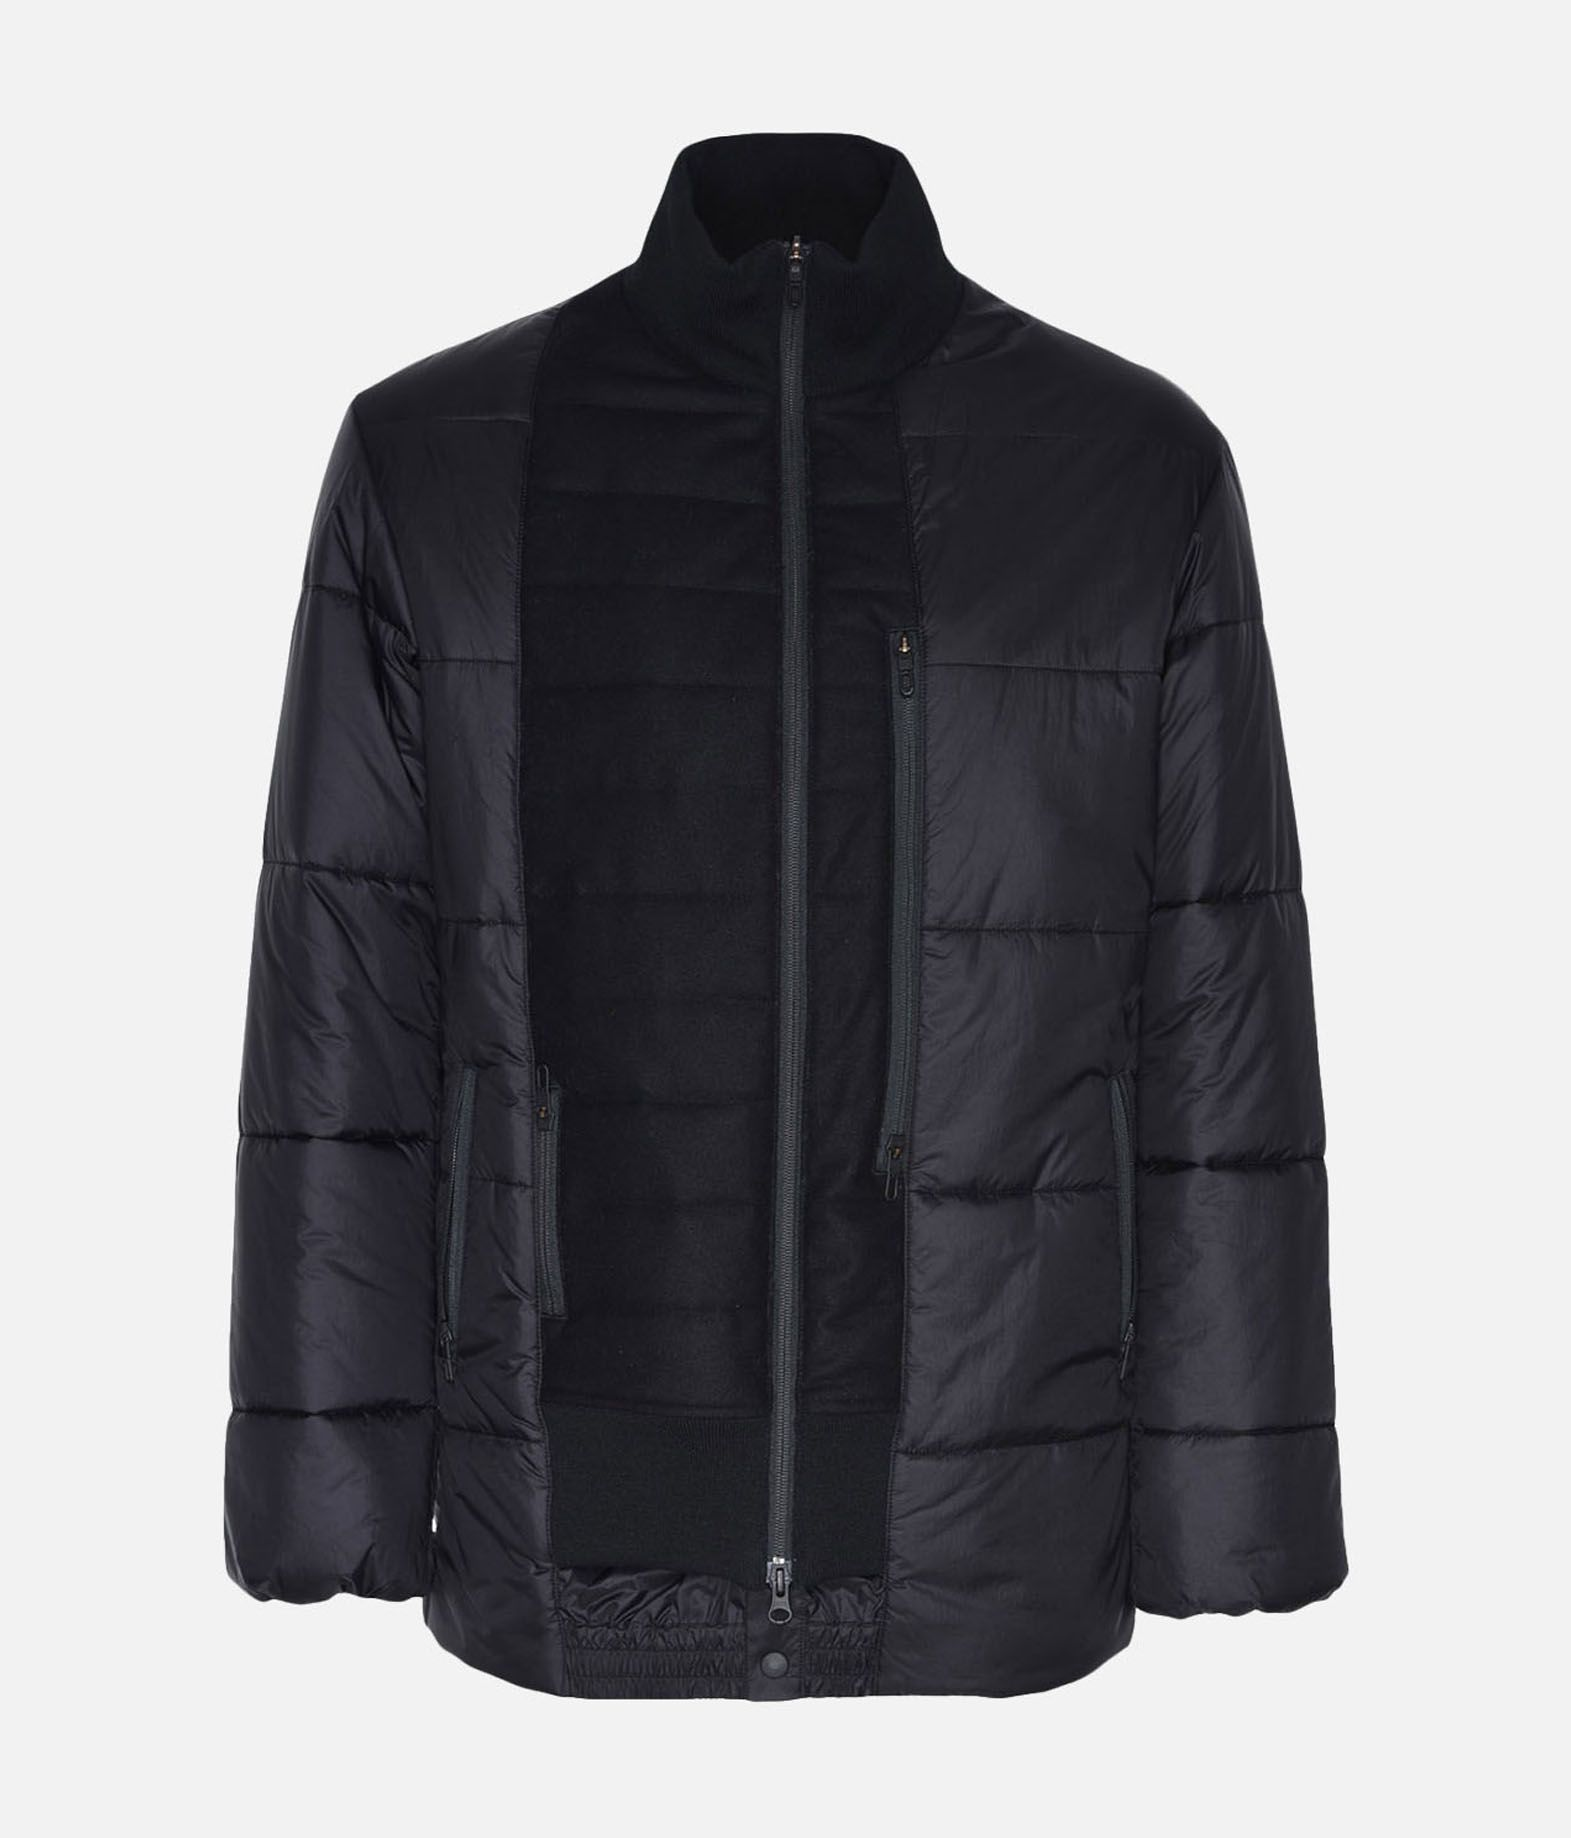 Y-3 Y-3 Patchwork Down Jacket Down jacket Man f